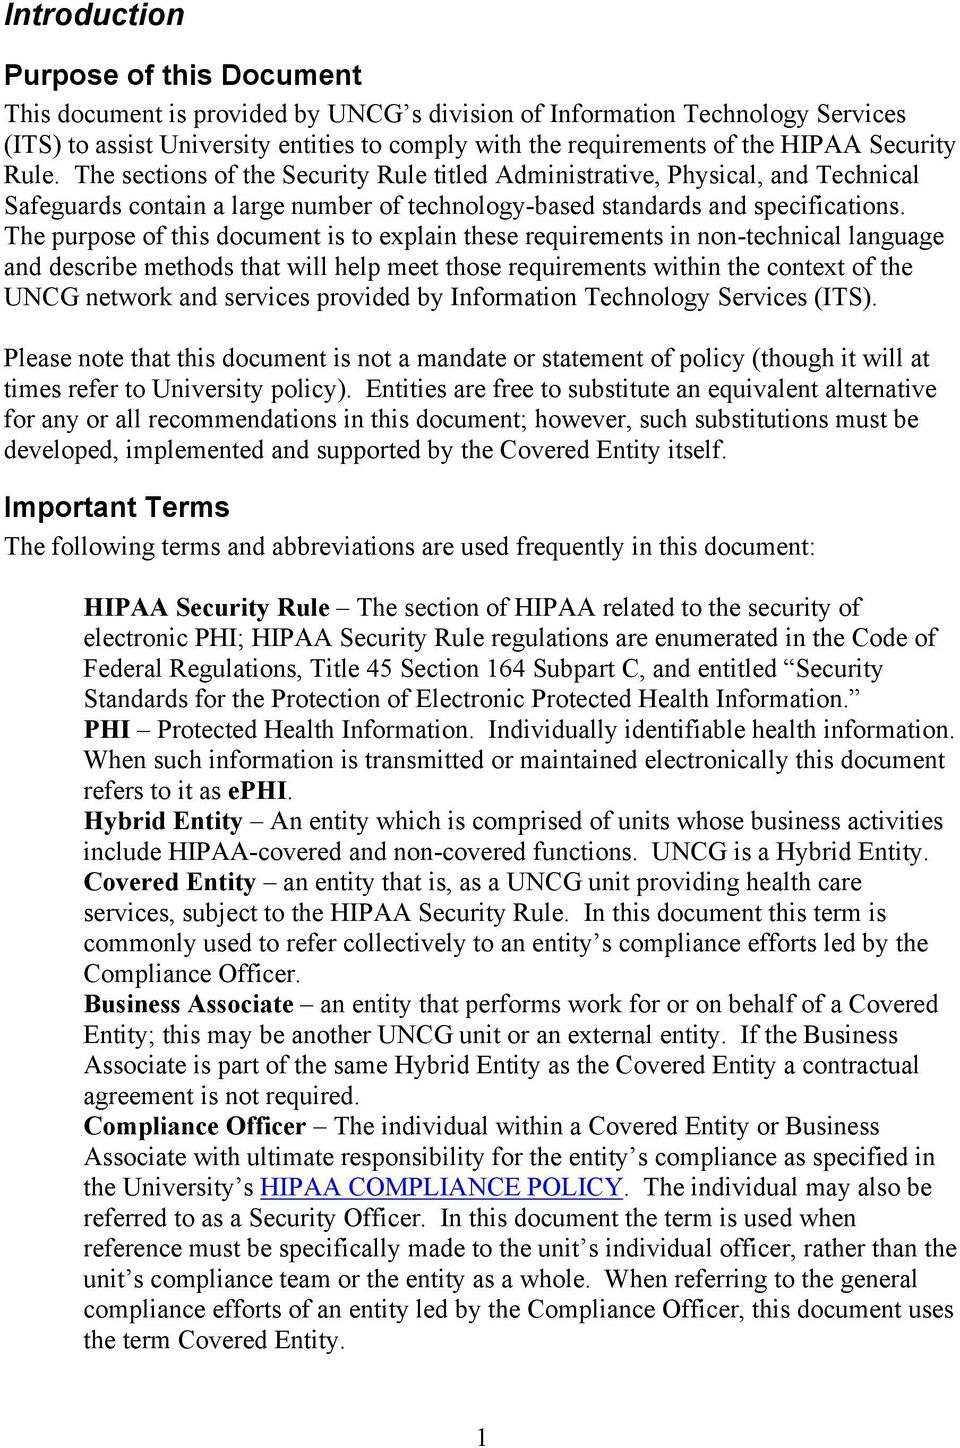 The purpose of this document is to explain these requirements in non-technical language and describe methods that will help meet those requirements within the context of the UNCG network and services